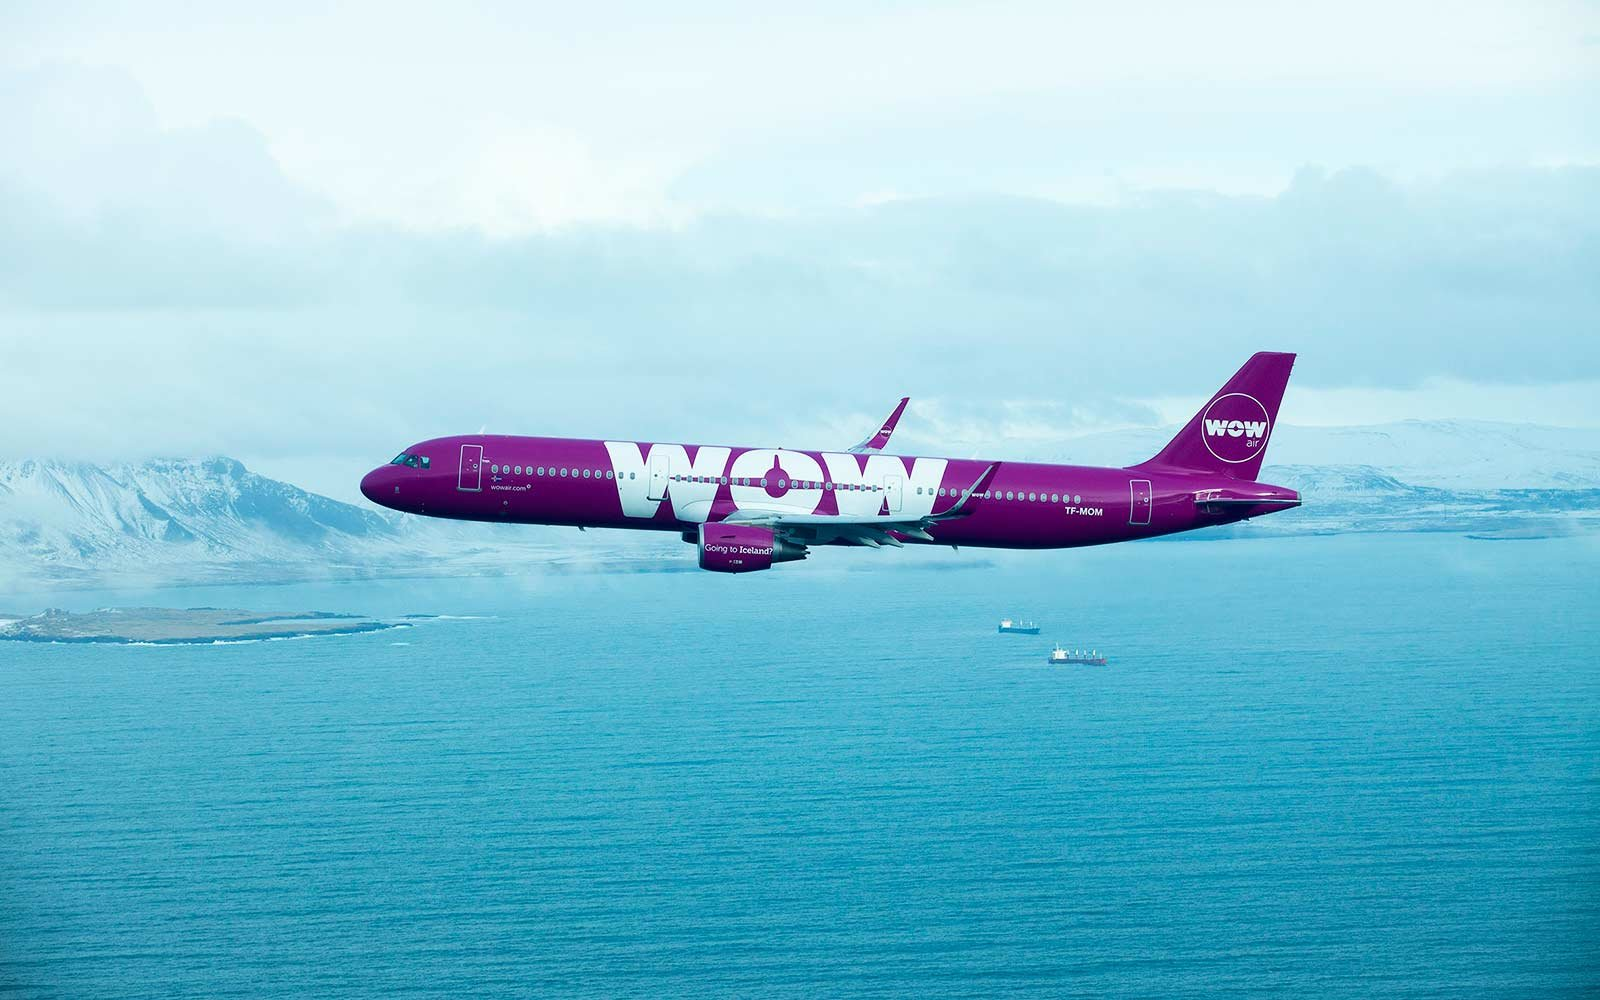 WOW Air 3-tiered tickets